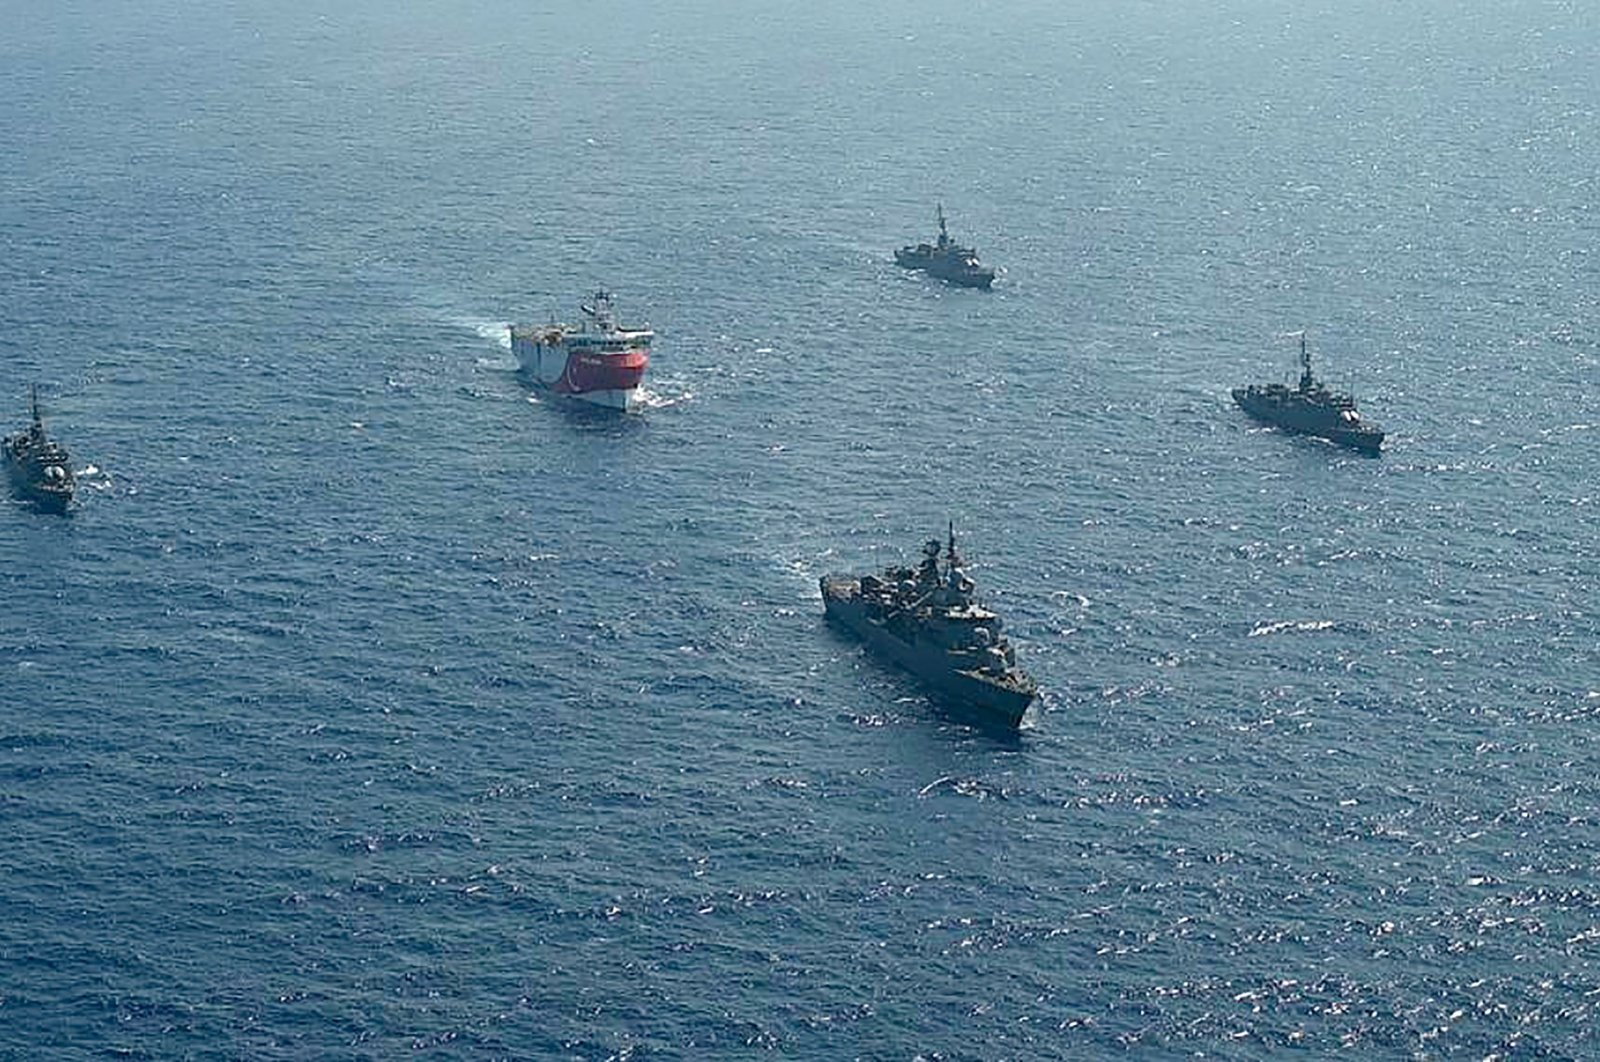 This handout photograph released by the Turkish Defense Ministry shows Turkish seismic research vessel Oruç Reis (C) as it is escorted by Turkish naval ships in the Mediterranean Sea, off southern Antalya province, Aug. 10, 2020. (Turkish Defense Ministry / AFP Photo)